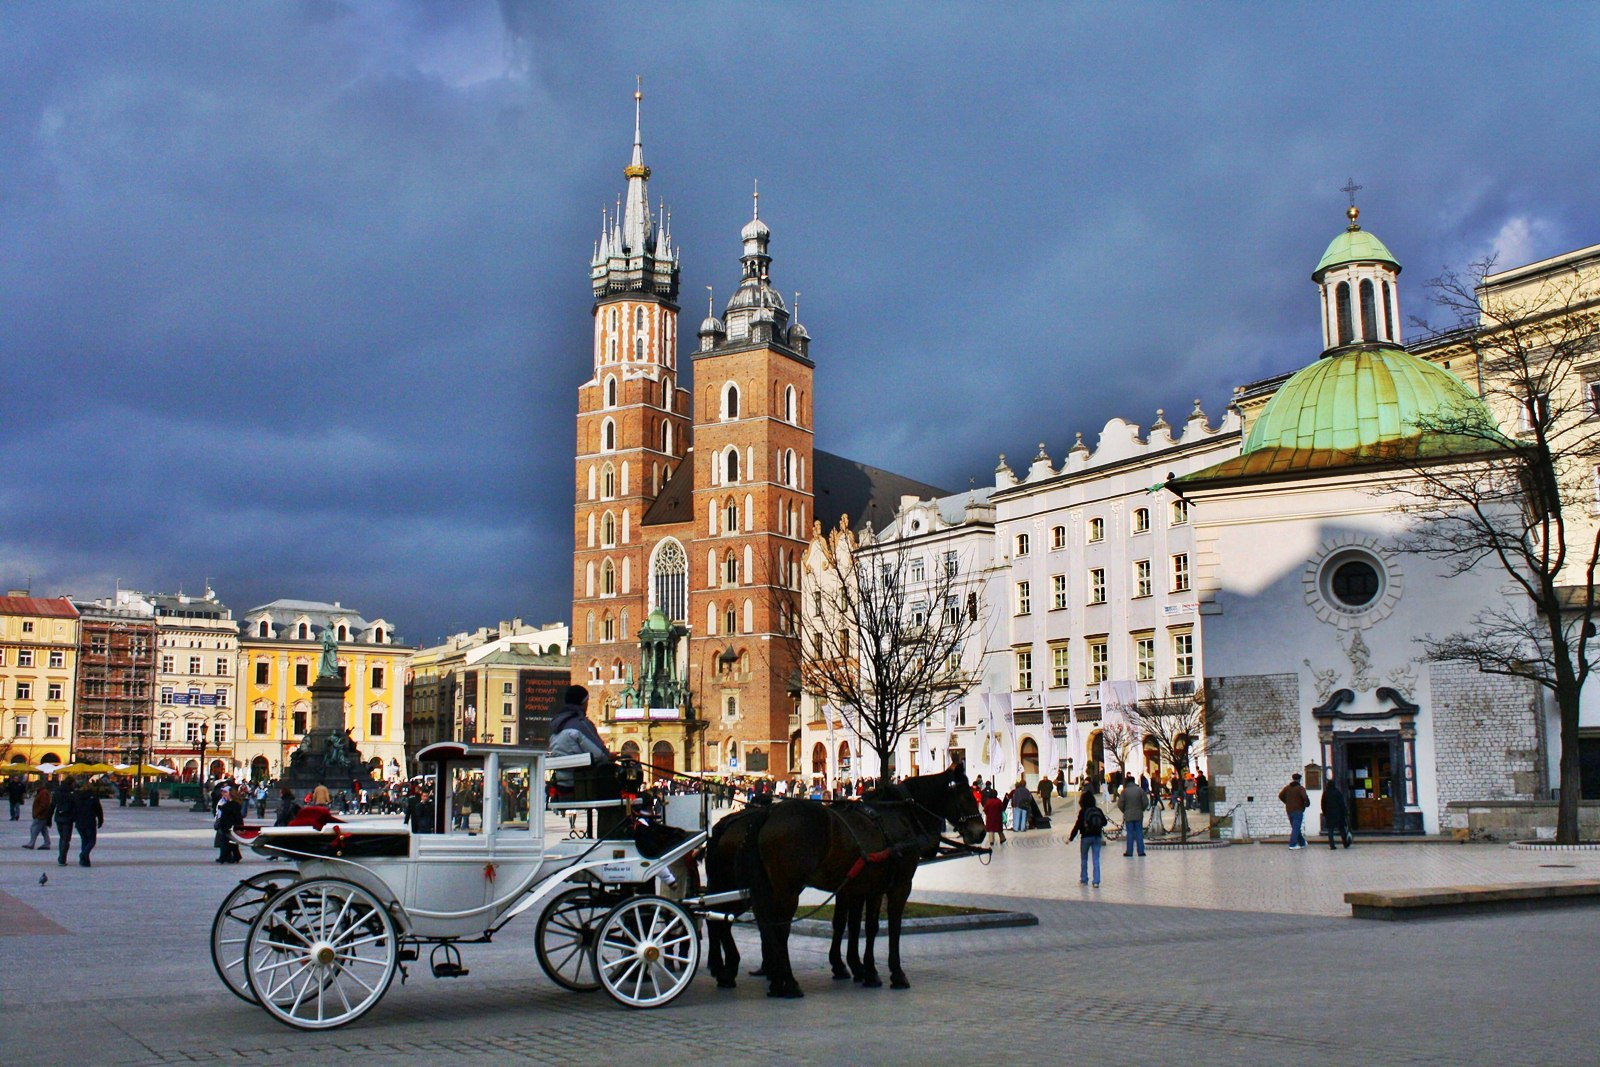 Krakow Wallpapers High Quality Download 1600x1067